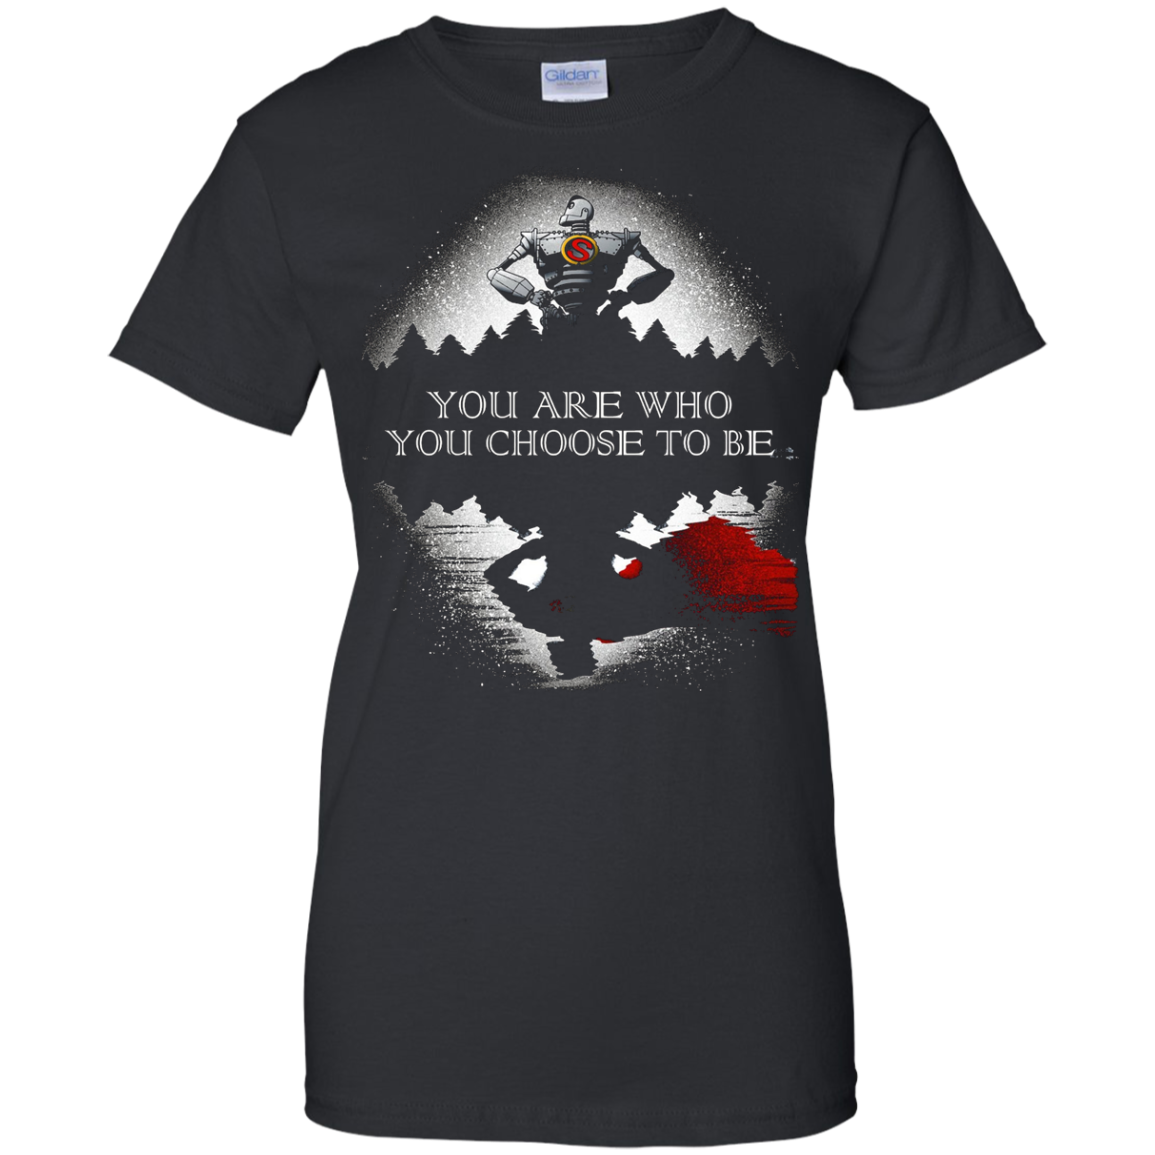 Iron Giant Shirt - You Are Who You Choose To Be